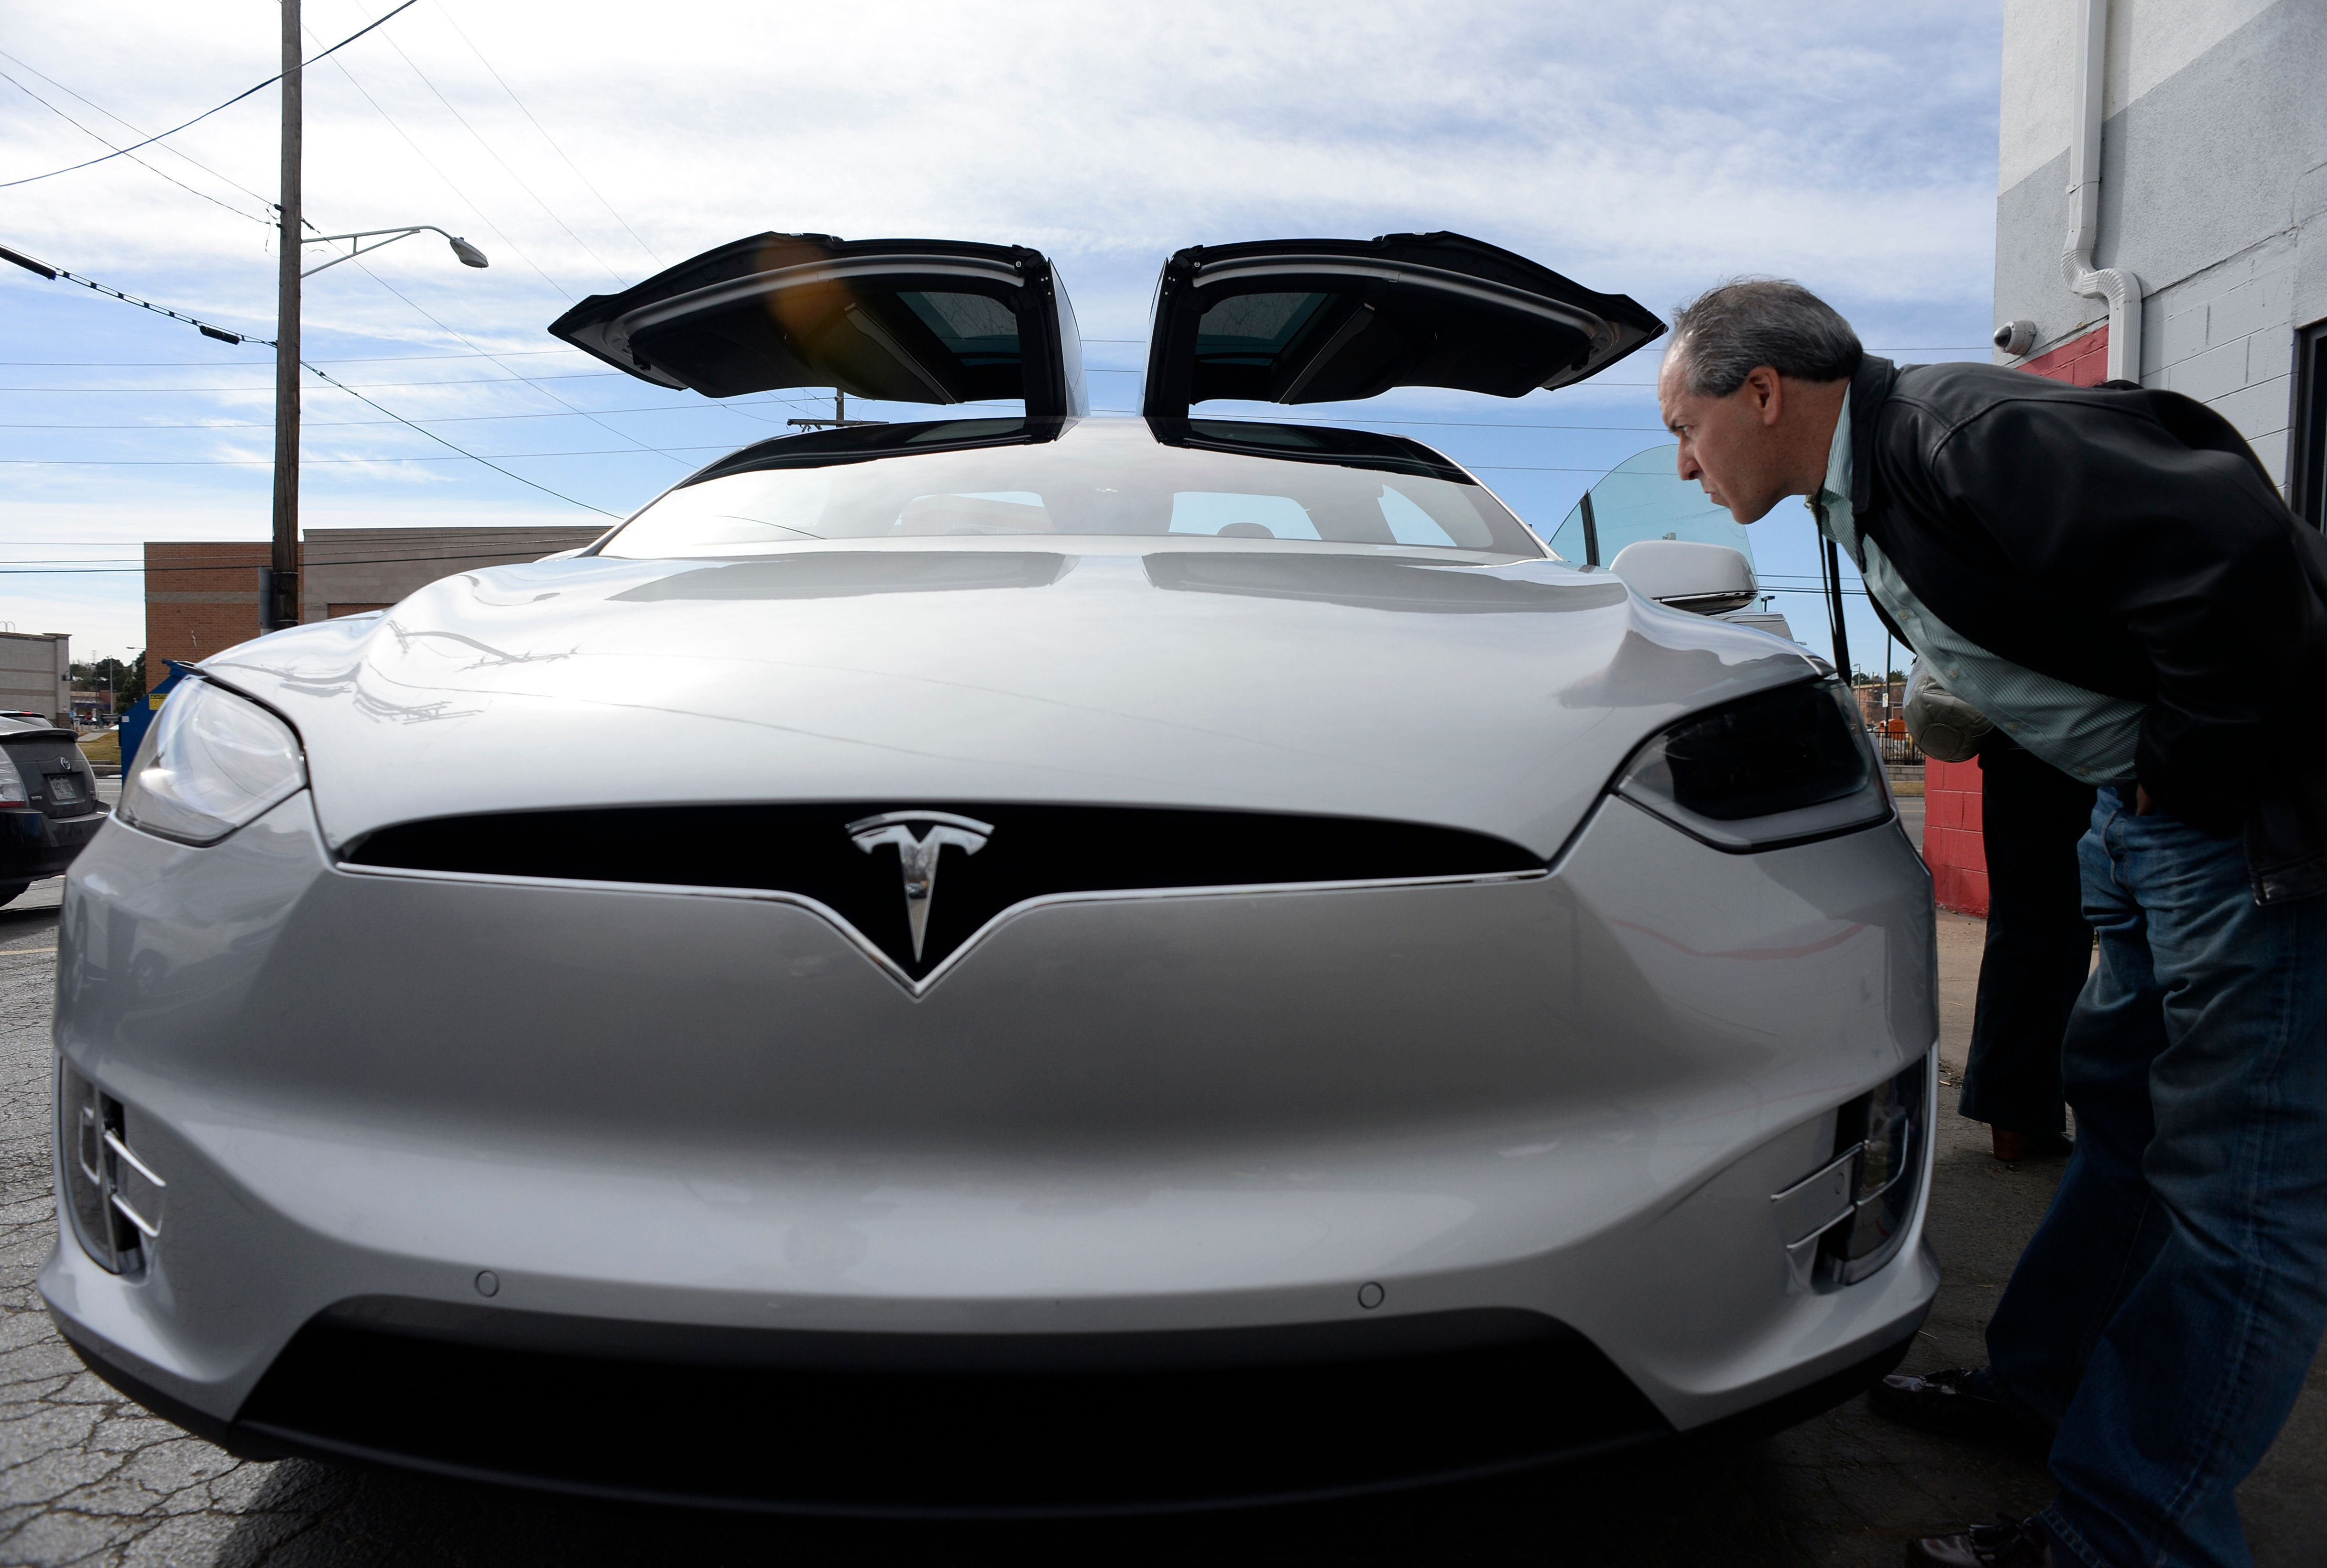 DENVER, CO - March 04: Jonathan Sollender looks over the finish on the new Tesla Model X P90D on display at Tesla Motors March 04, 2016. The Tesla Model X P90D electric vehicle travels 0-60 in 3.8 seconds, has Falcon Wings for passenger doors, seats 7 passengers and has a 250-mile range per charge. Customers who pre-ordered the car got a firsthand look and a test drive Friday. (Photo by Andy Cross/The Denver Post via Getty Images)